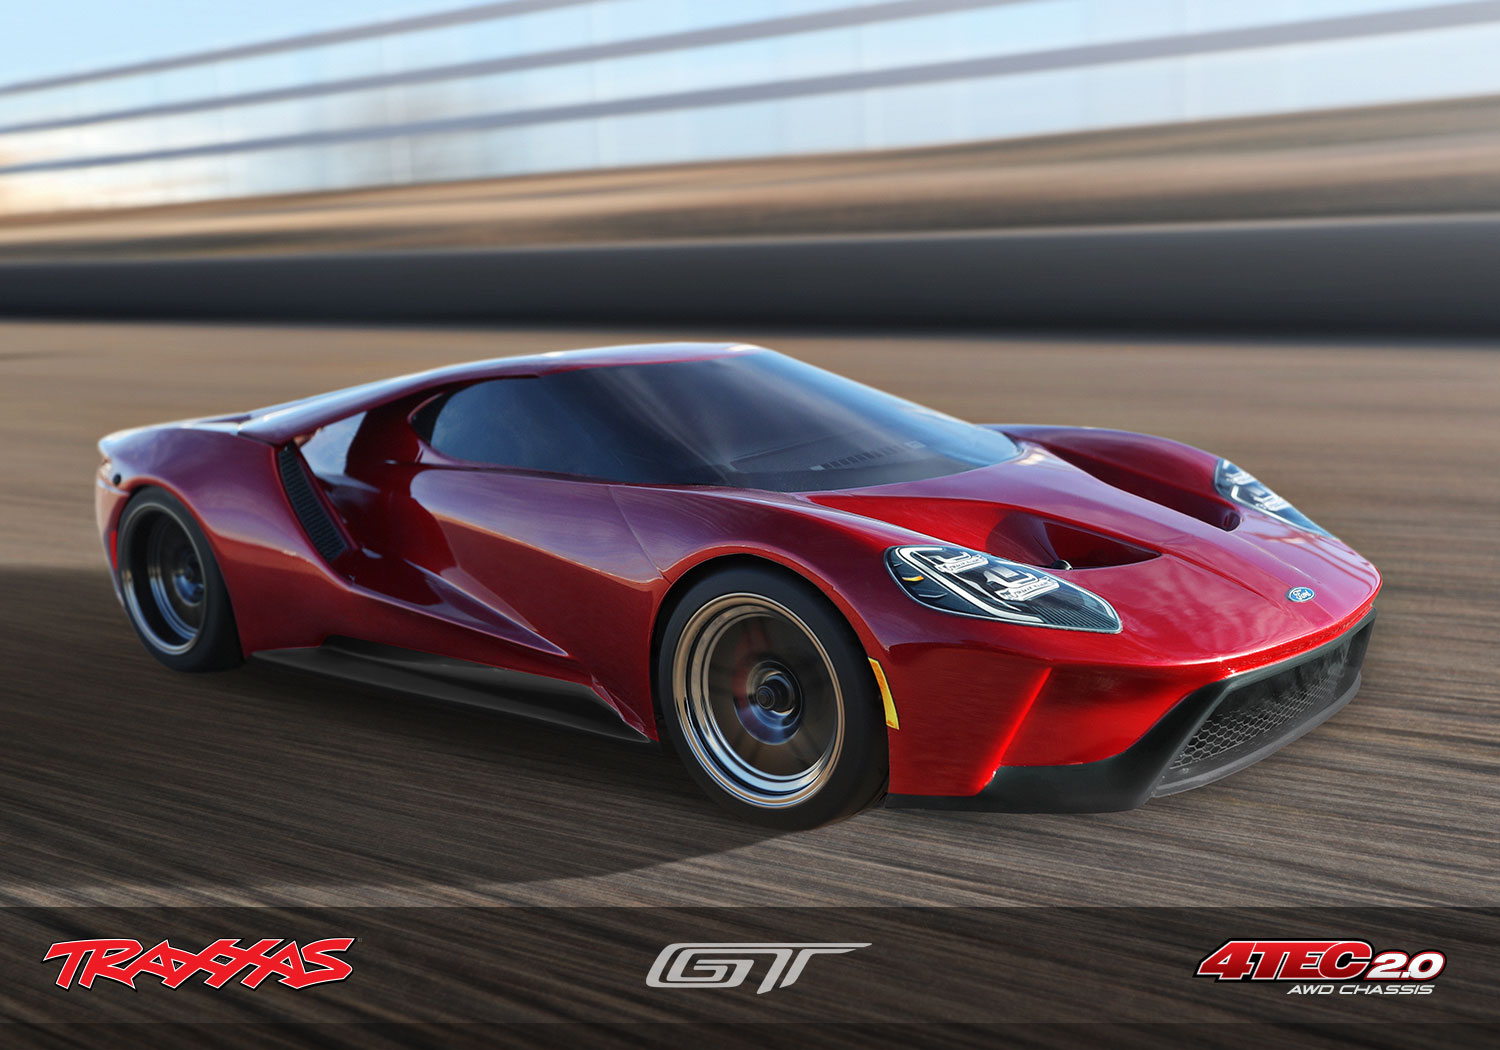 Traxxas Ford Gt Made To Be Driven Go Back Gallery For Brushless Electric Motor Diagram Studio